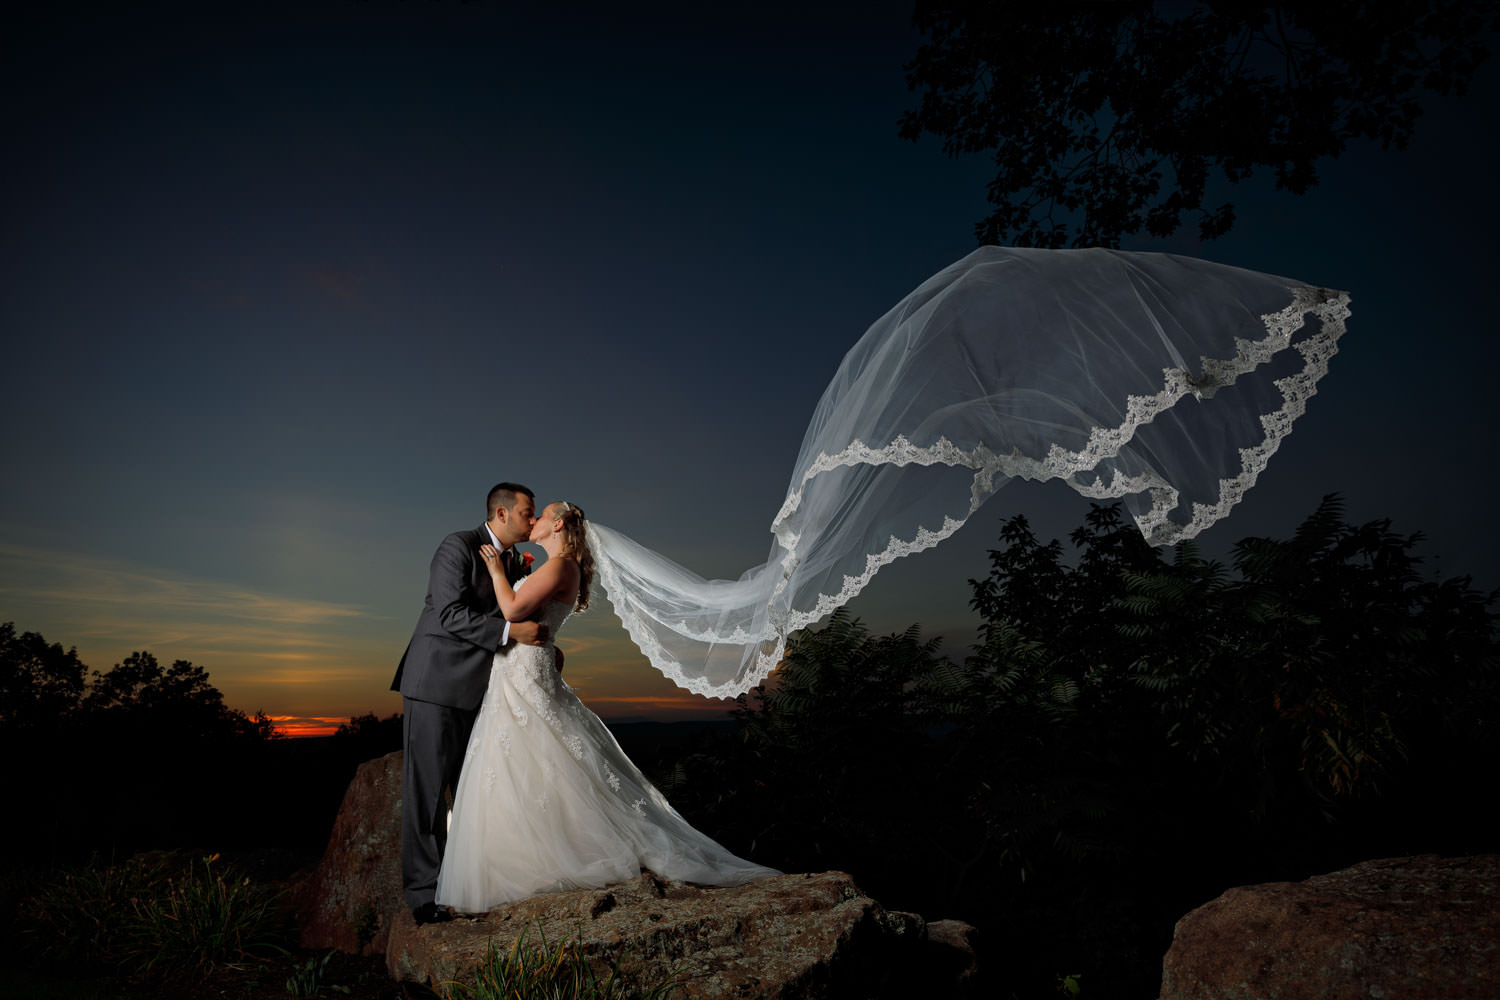 Sunset photo with Bride dipping groom with veil flowing in the wind